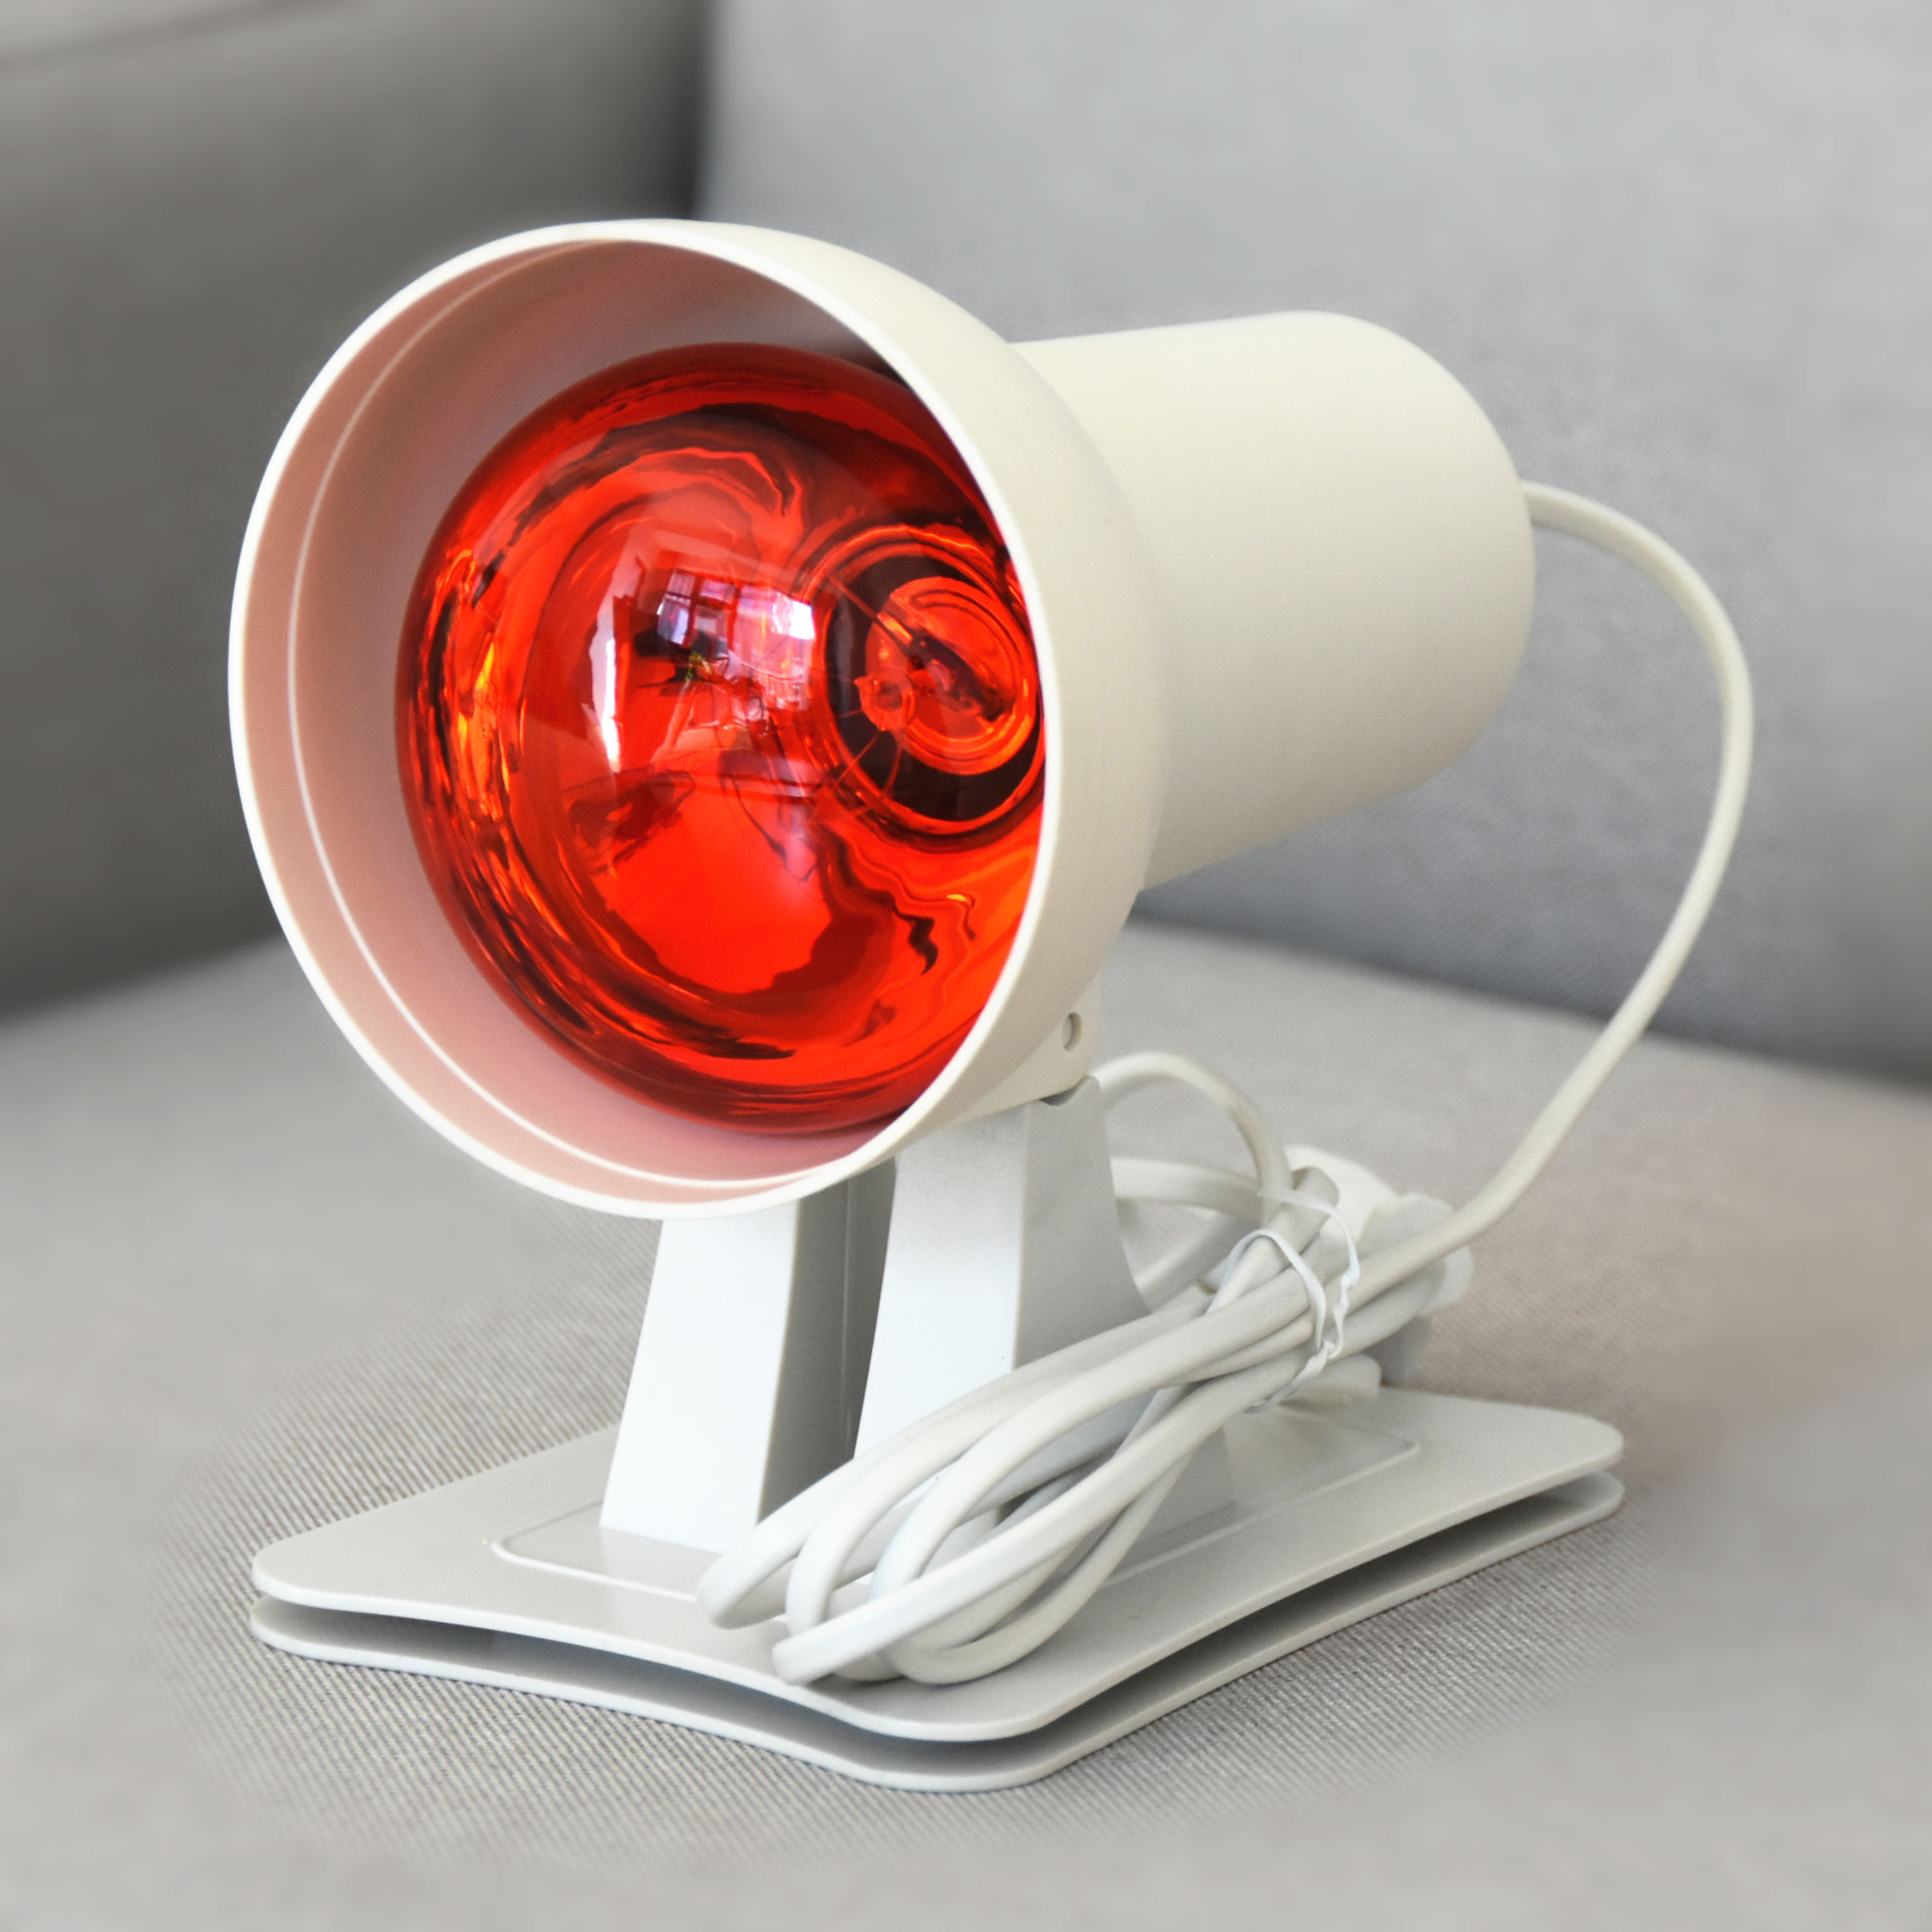 infra red lamp physical therapy lamp for near infrared light therapy device